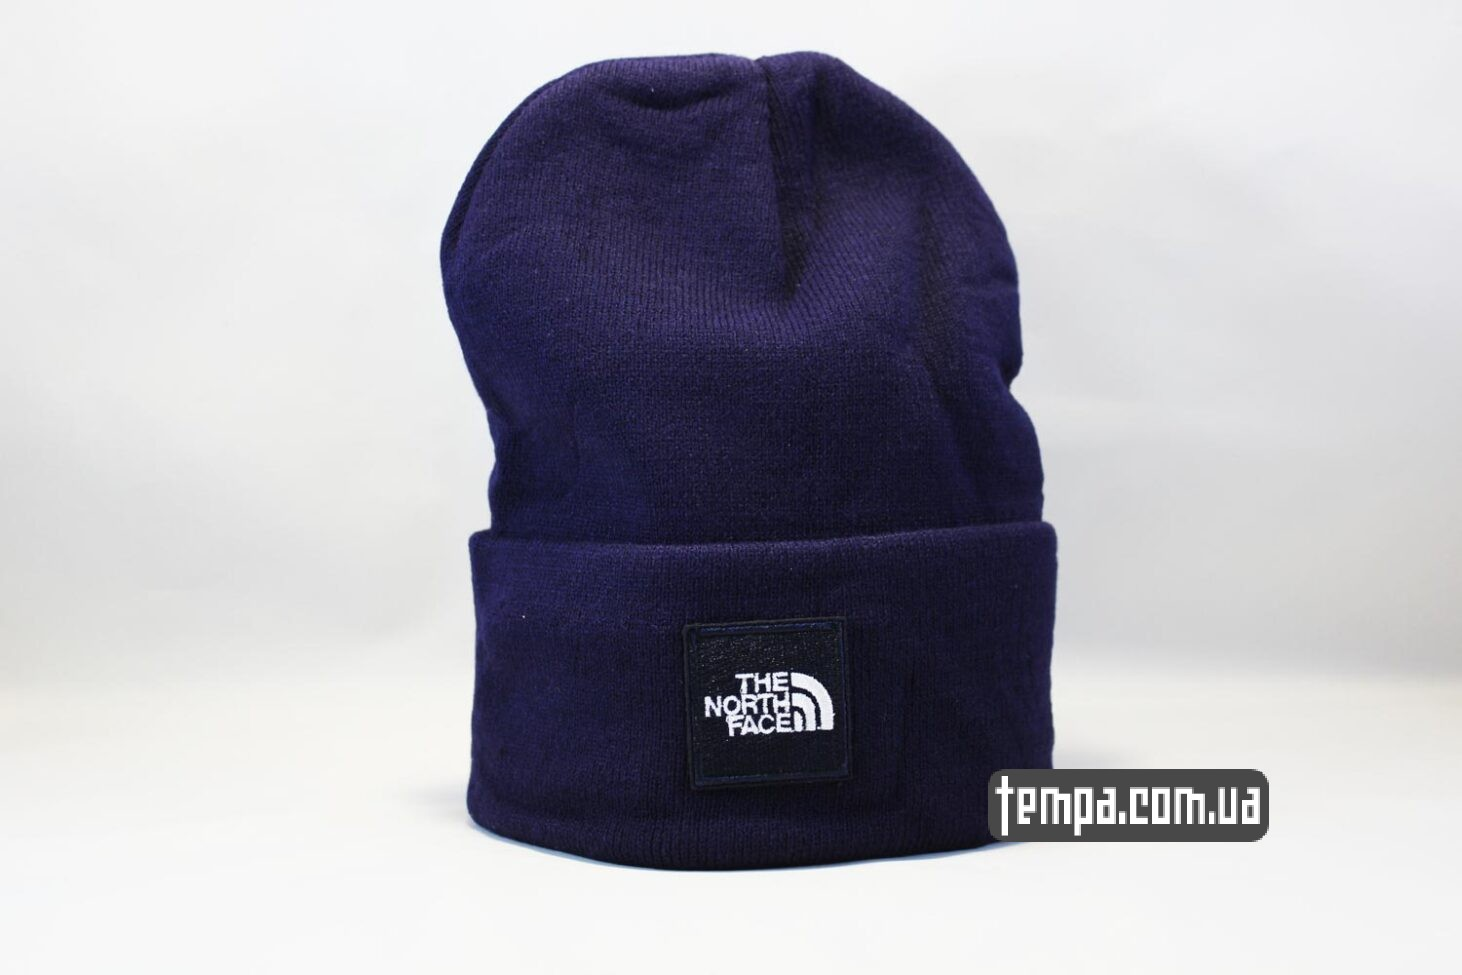 шапка beanie North Face синяя Норс Фейс